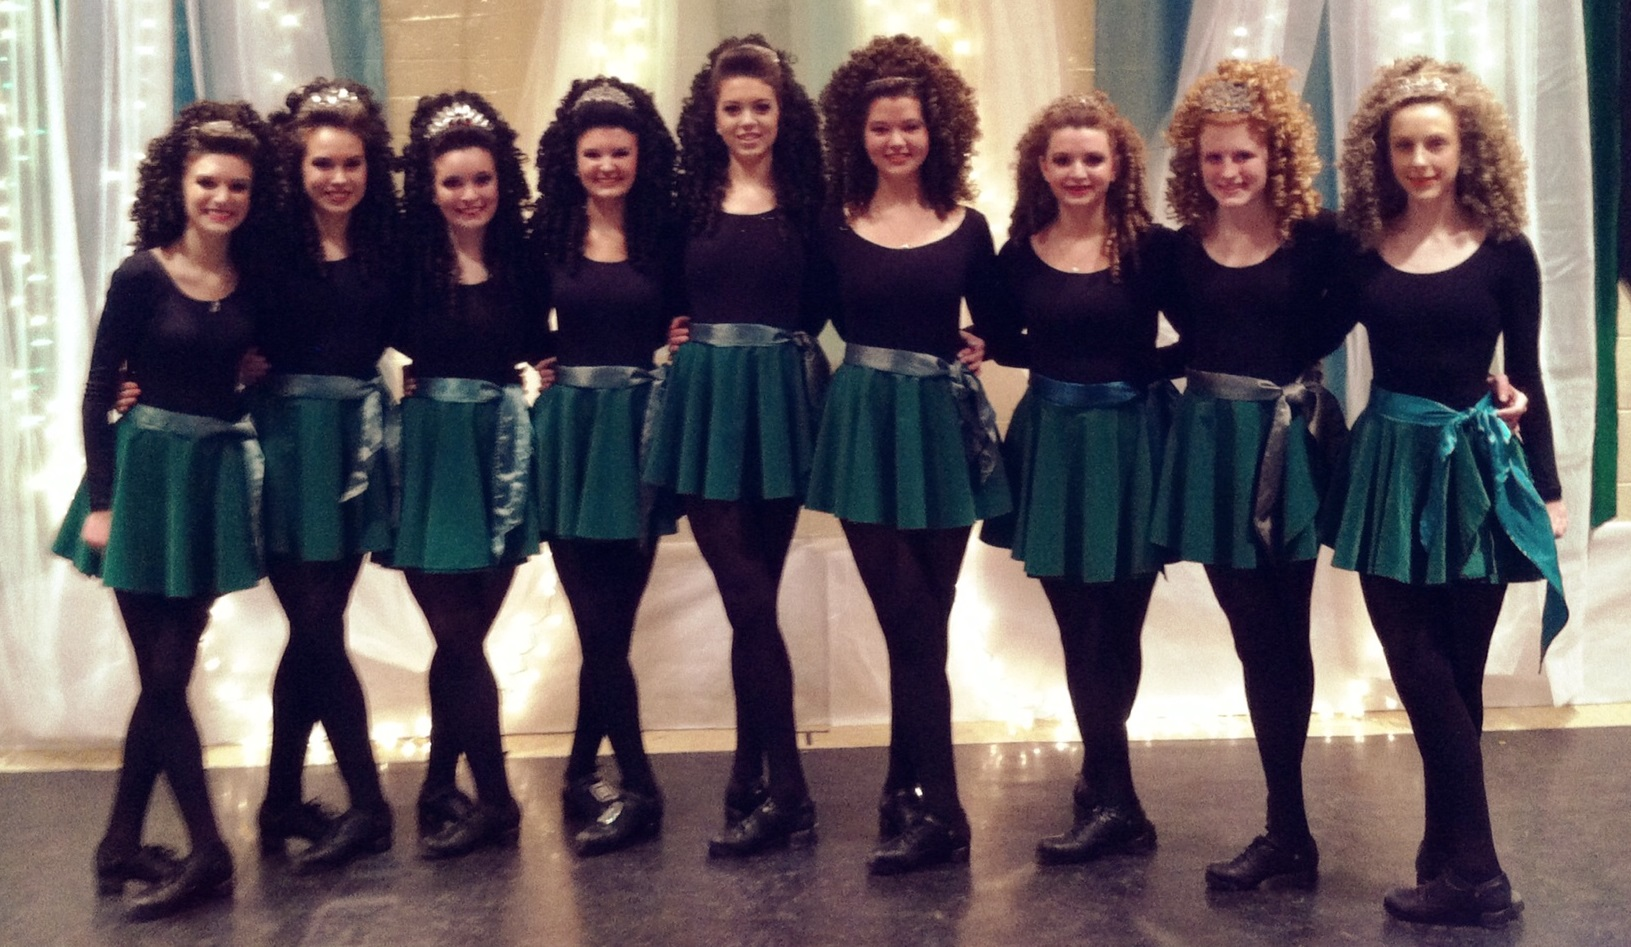 Richens/Timm Academy of Irish Dance